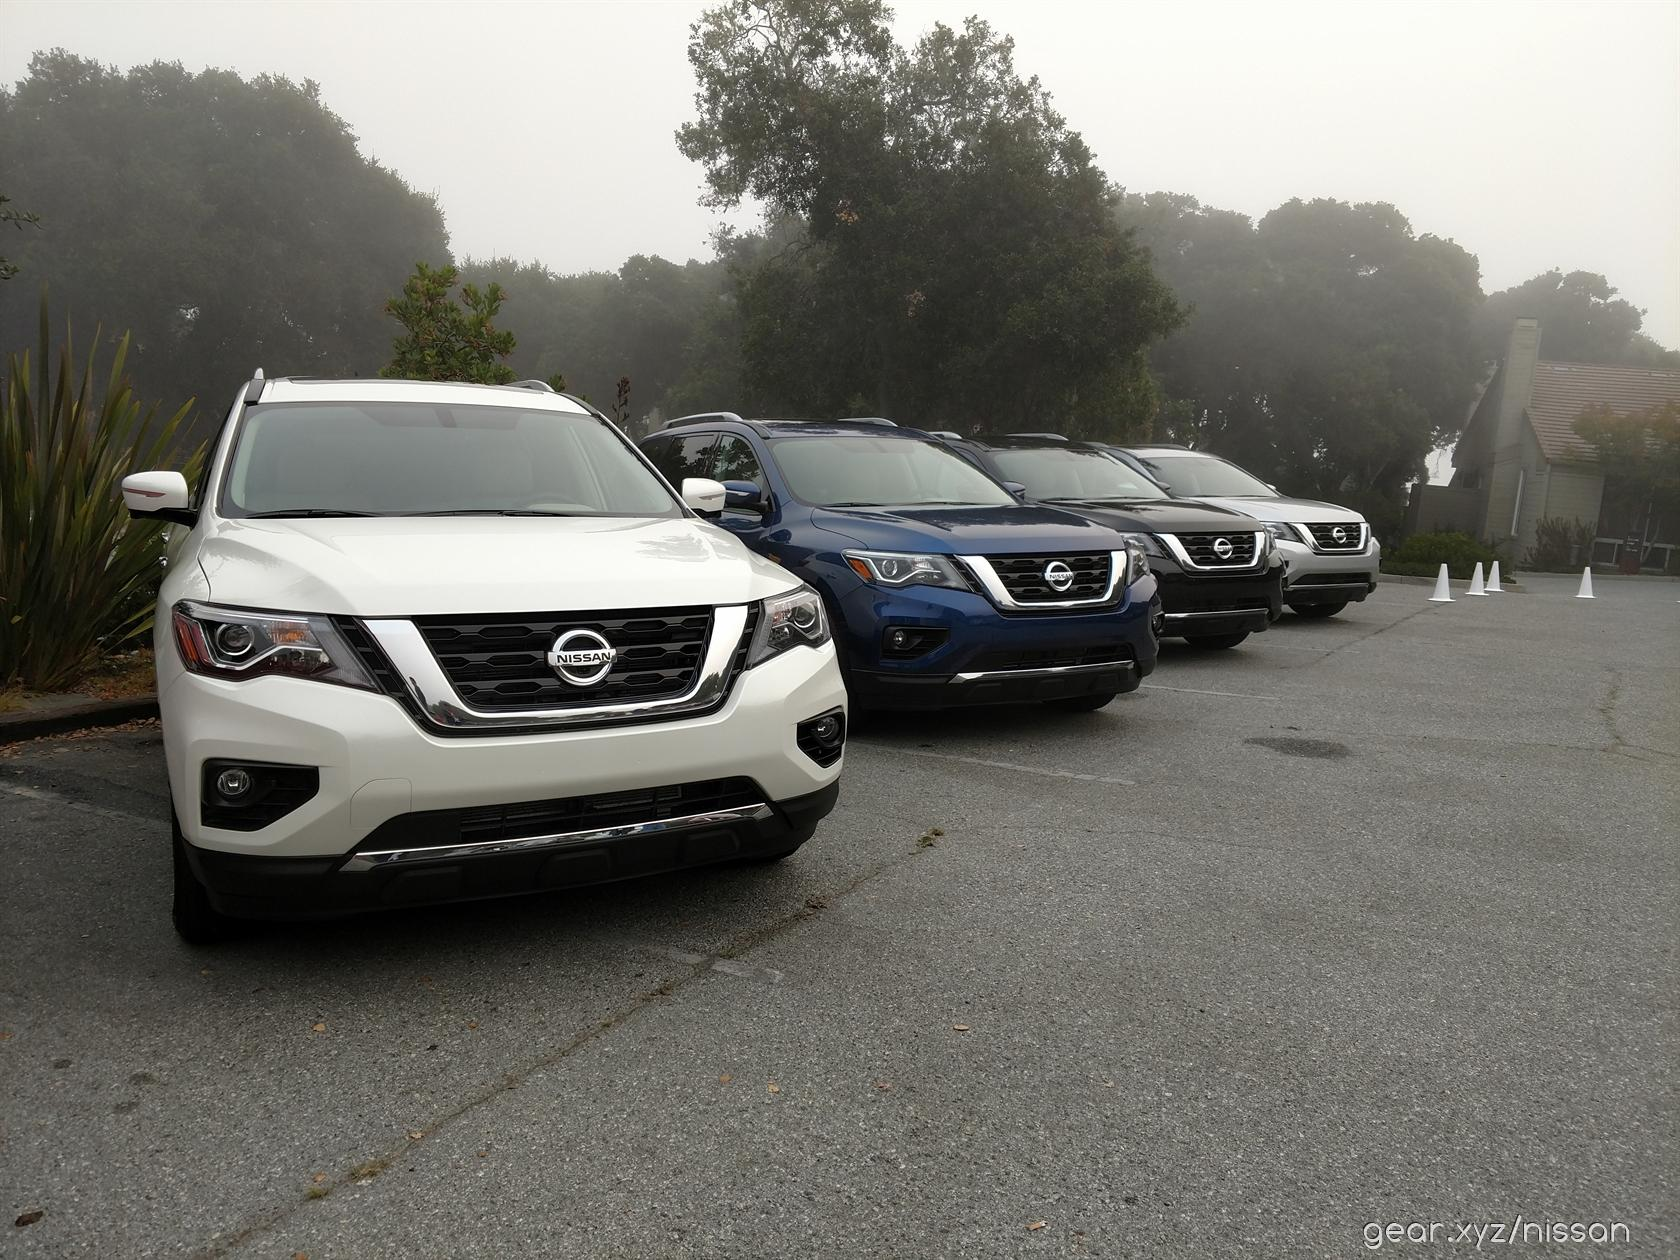 2017 Nissan Pathfinder first-drive - SlashGear